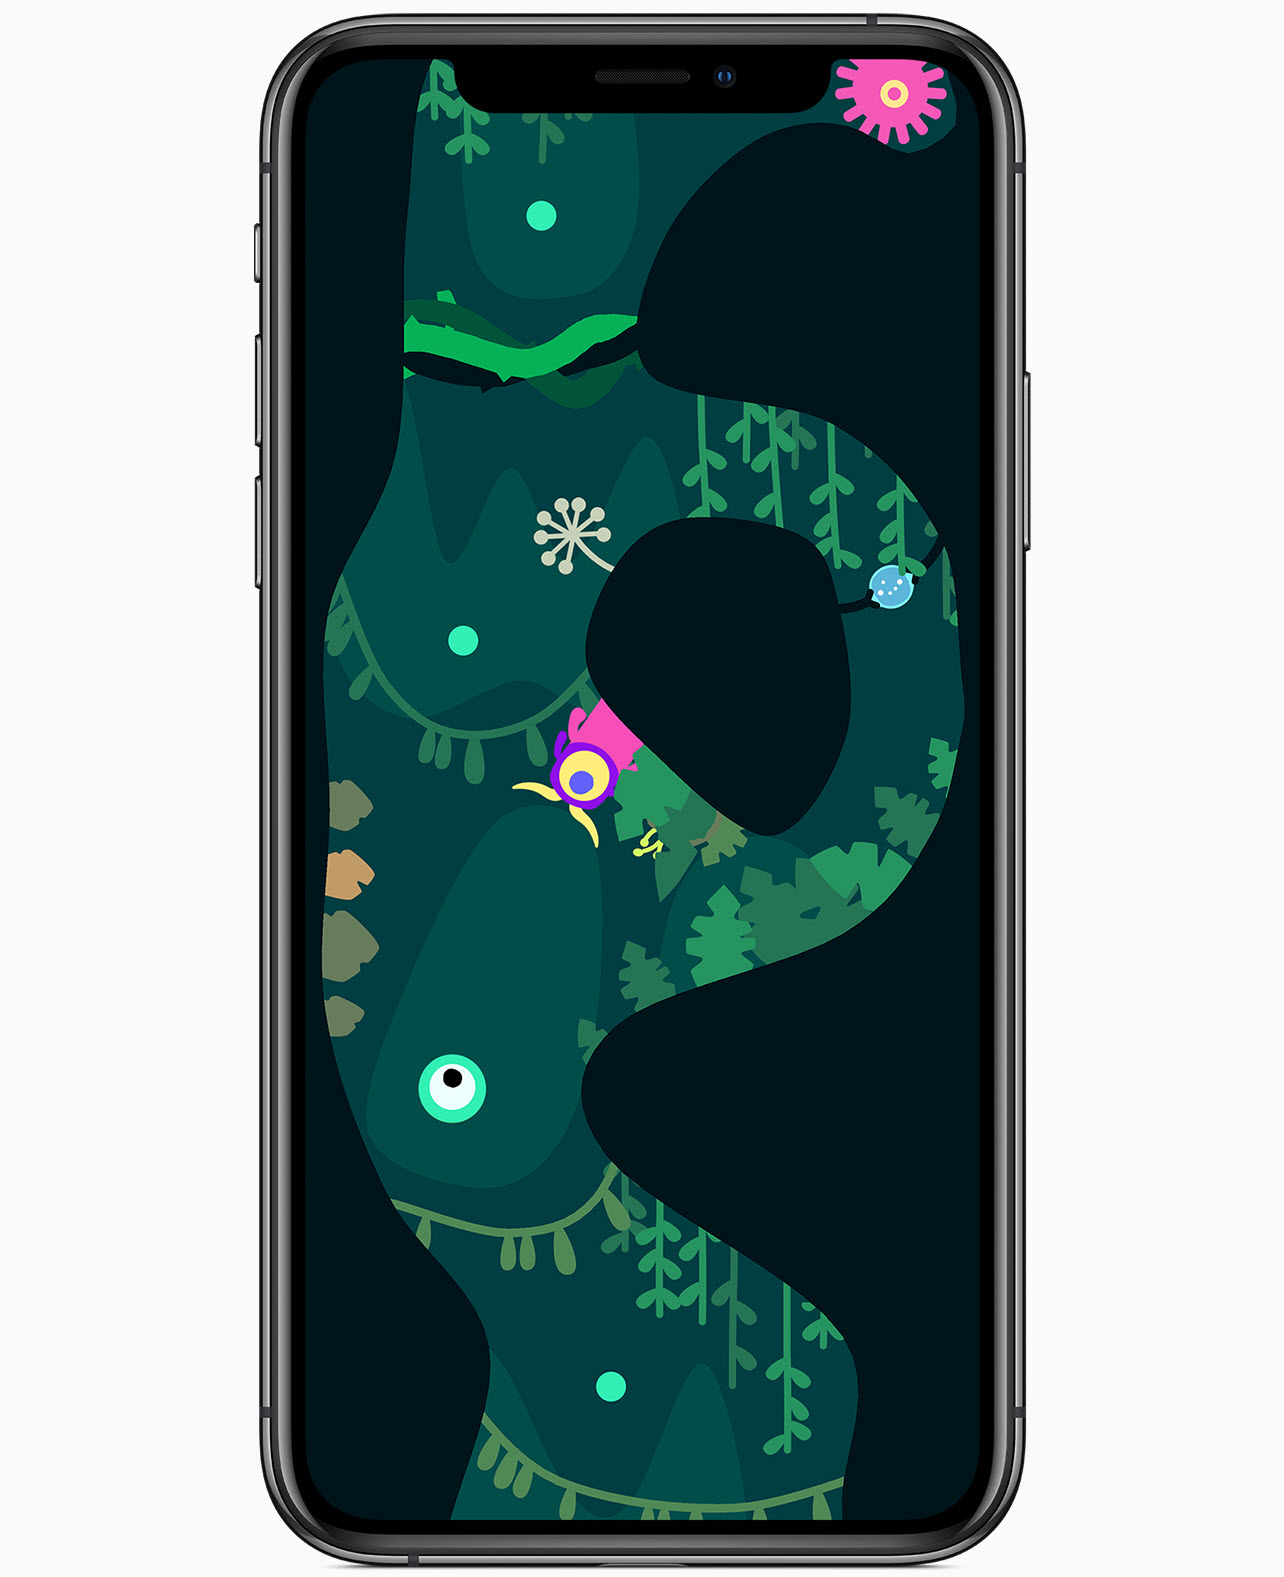 WWDC19: 9 iOS app and game developers receive Apple Design Awards